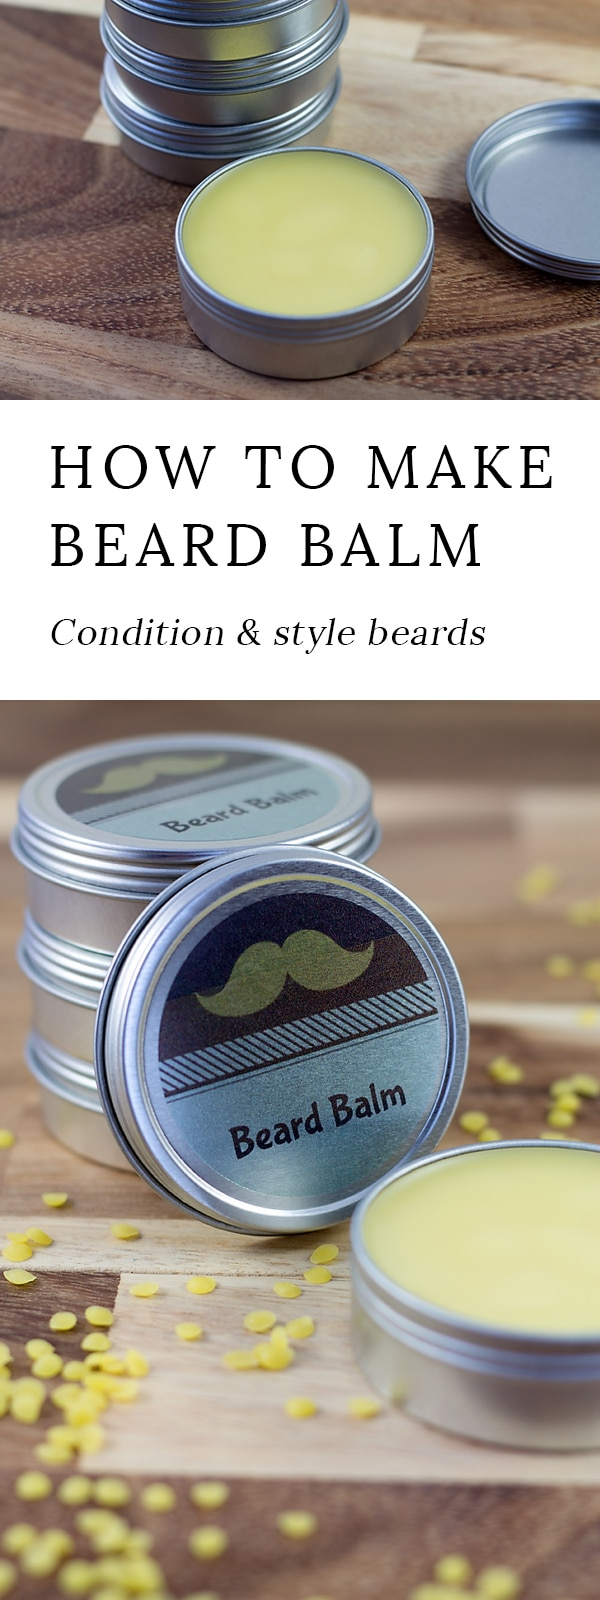 Cedarwood Beard Balm is an easy and thoughtful DIY gift for him that helps keep beards soft and tame during the harsh winter months.